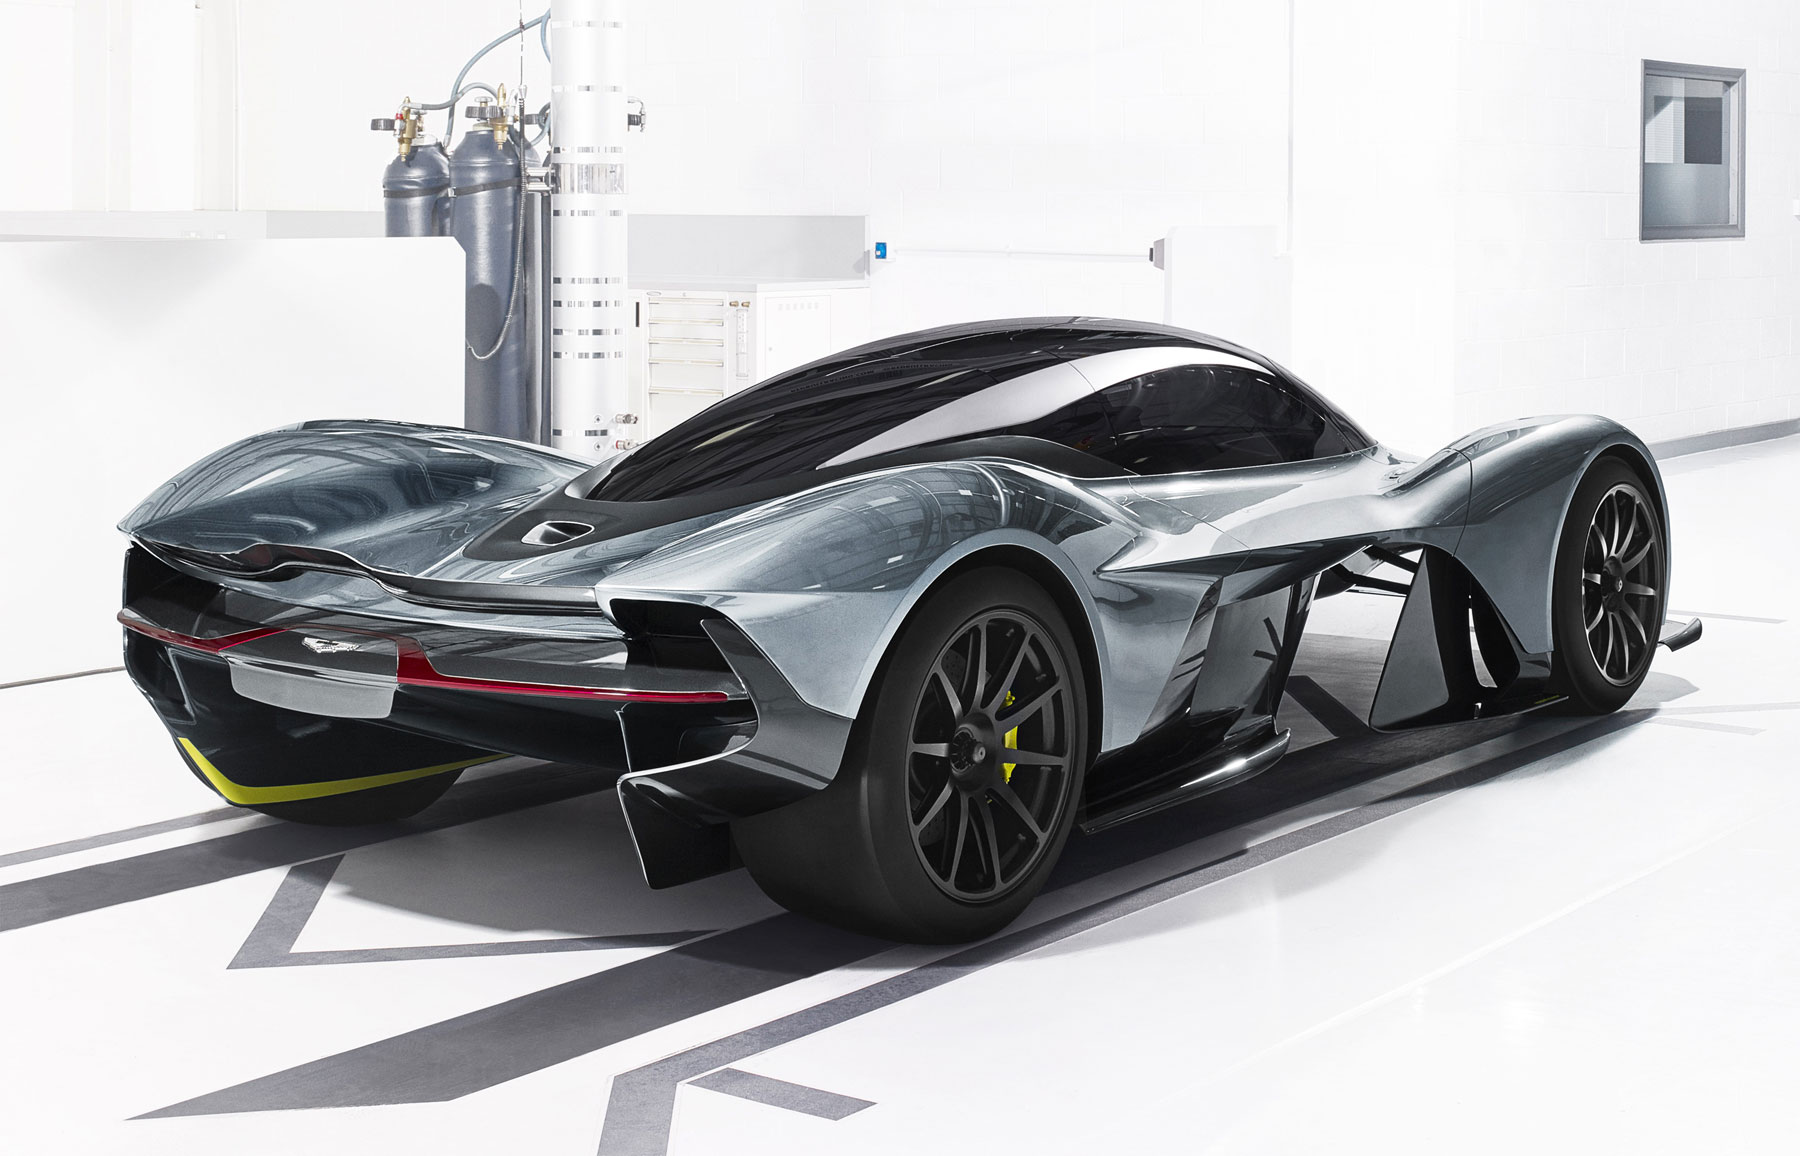 The Aston Martin And Red Bull Racing AM-RB 001 hypercar